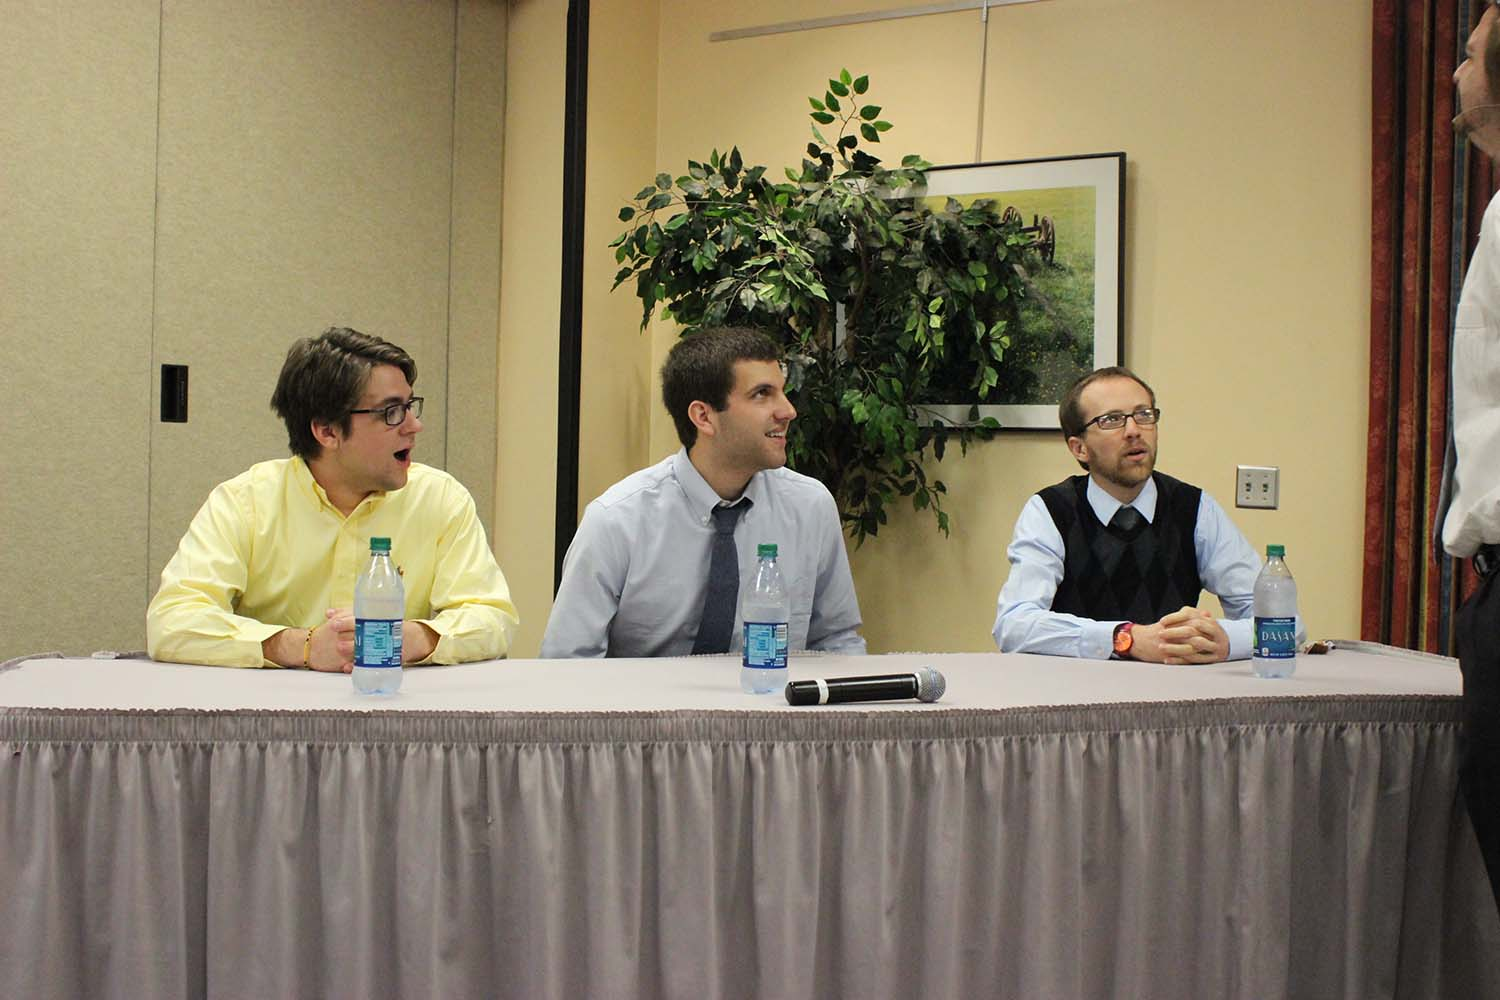 """Launch"" panelists from left to right: Ethan Byrd, Founder of the Baboomi alarm clock, which surpassed its crowdfuning goal on Kickstarter.com (also a computer science student at Georgia Tech); Dakota Burke, founder of Diamond Boards skim board company (and a graduate of the Berry College Entrepreneurship program); Ryan Simmons, President of Brand RED Studios, a Rome-based film studio (also using some really interesting applications of drones); and moderator Joel Wall, founder of OnBoxx."